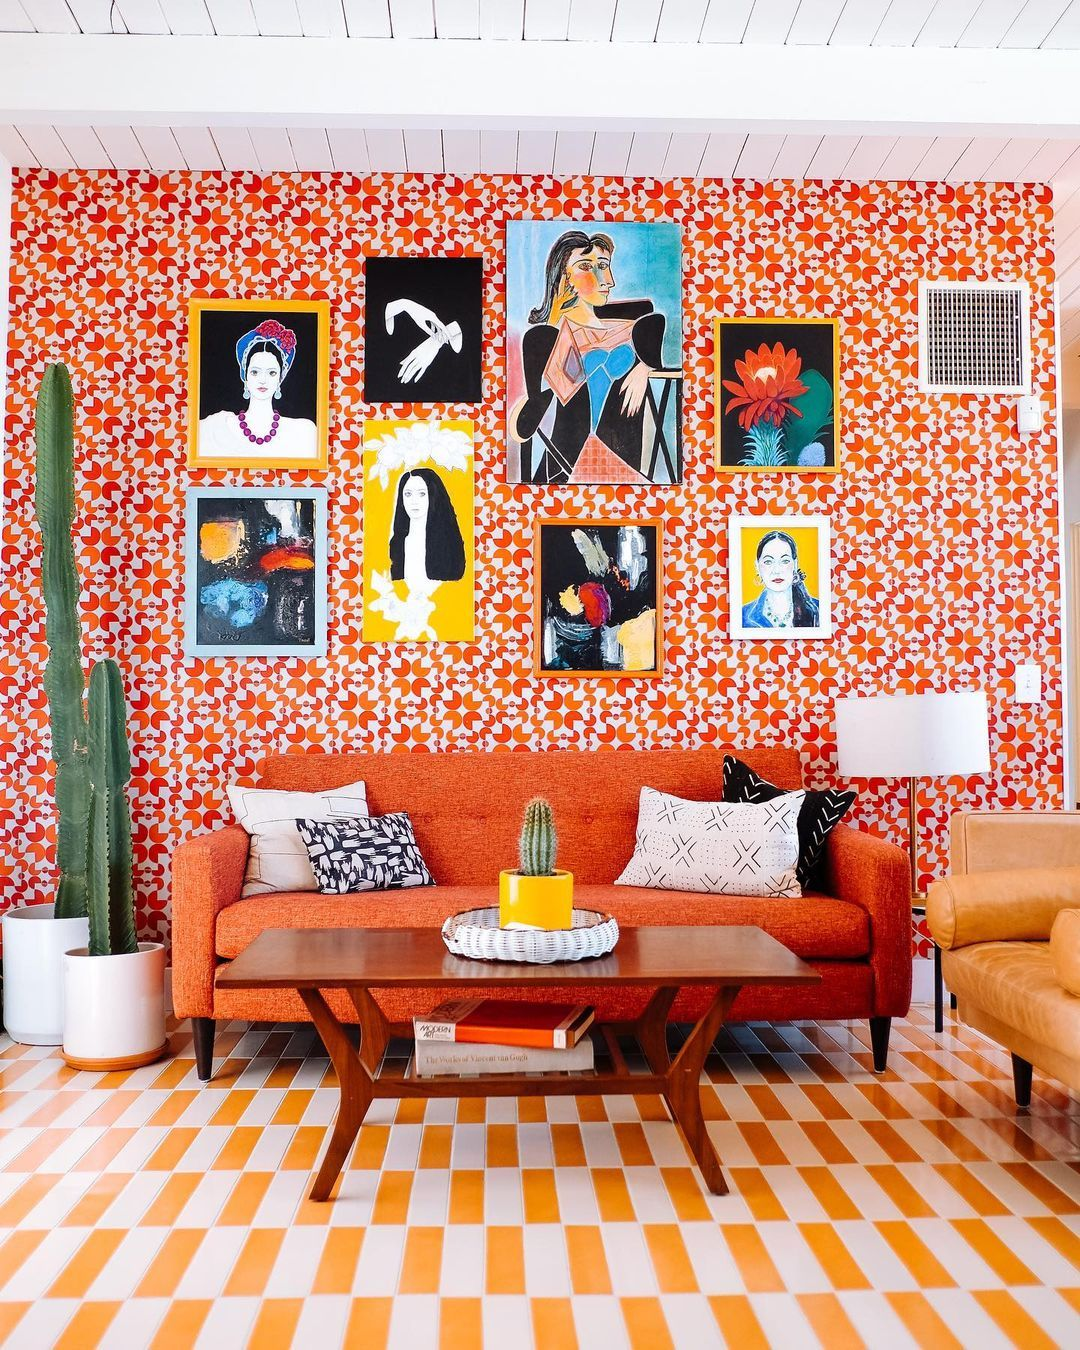 8 Colourful Airbnbs To Book Around The World